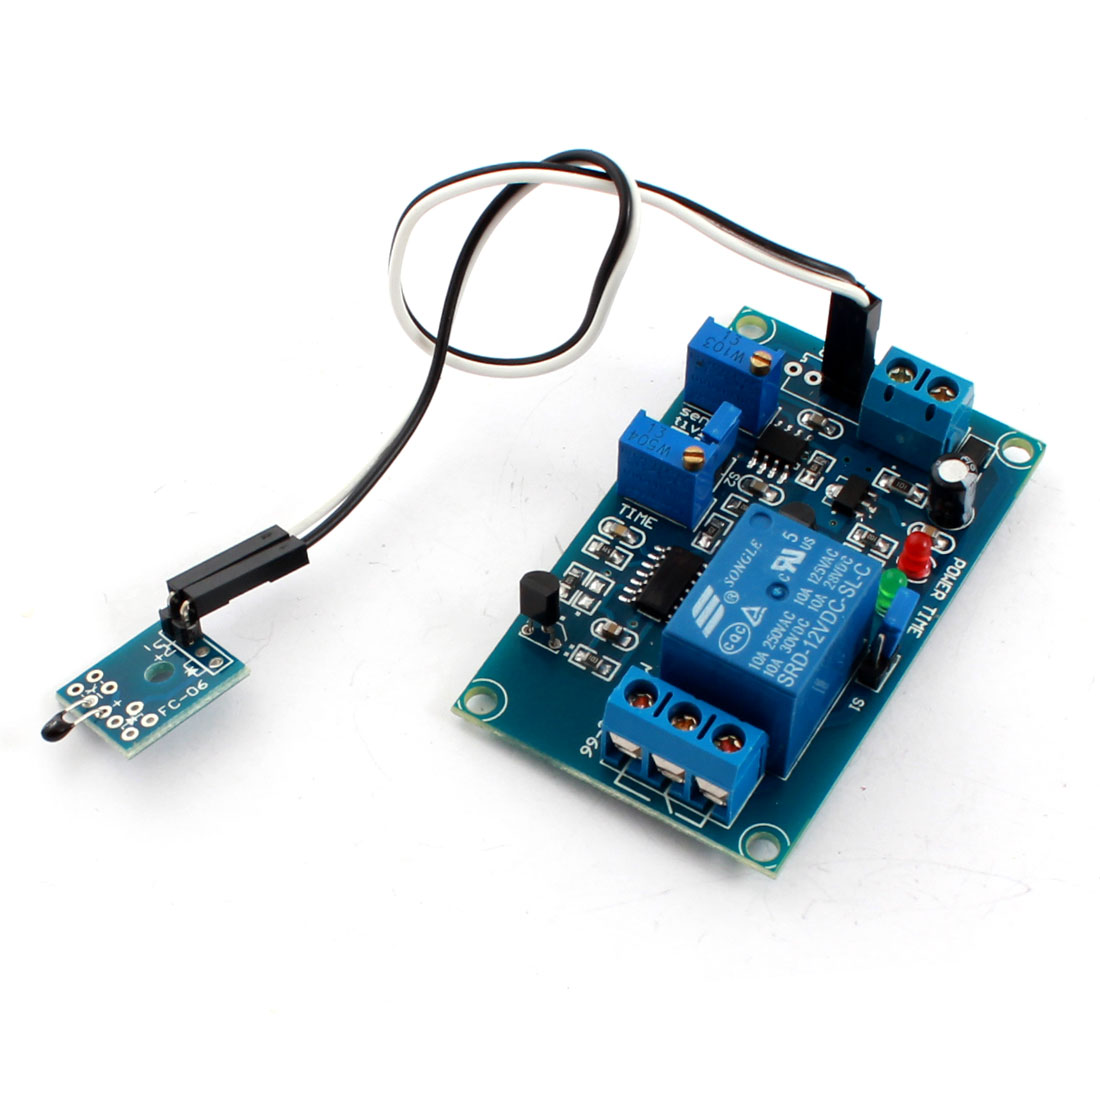 DC12V 0-20s Low Temperature Trigger Thermosensitive Time Delay PCB Board Relay Module Blue